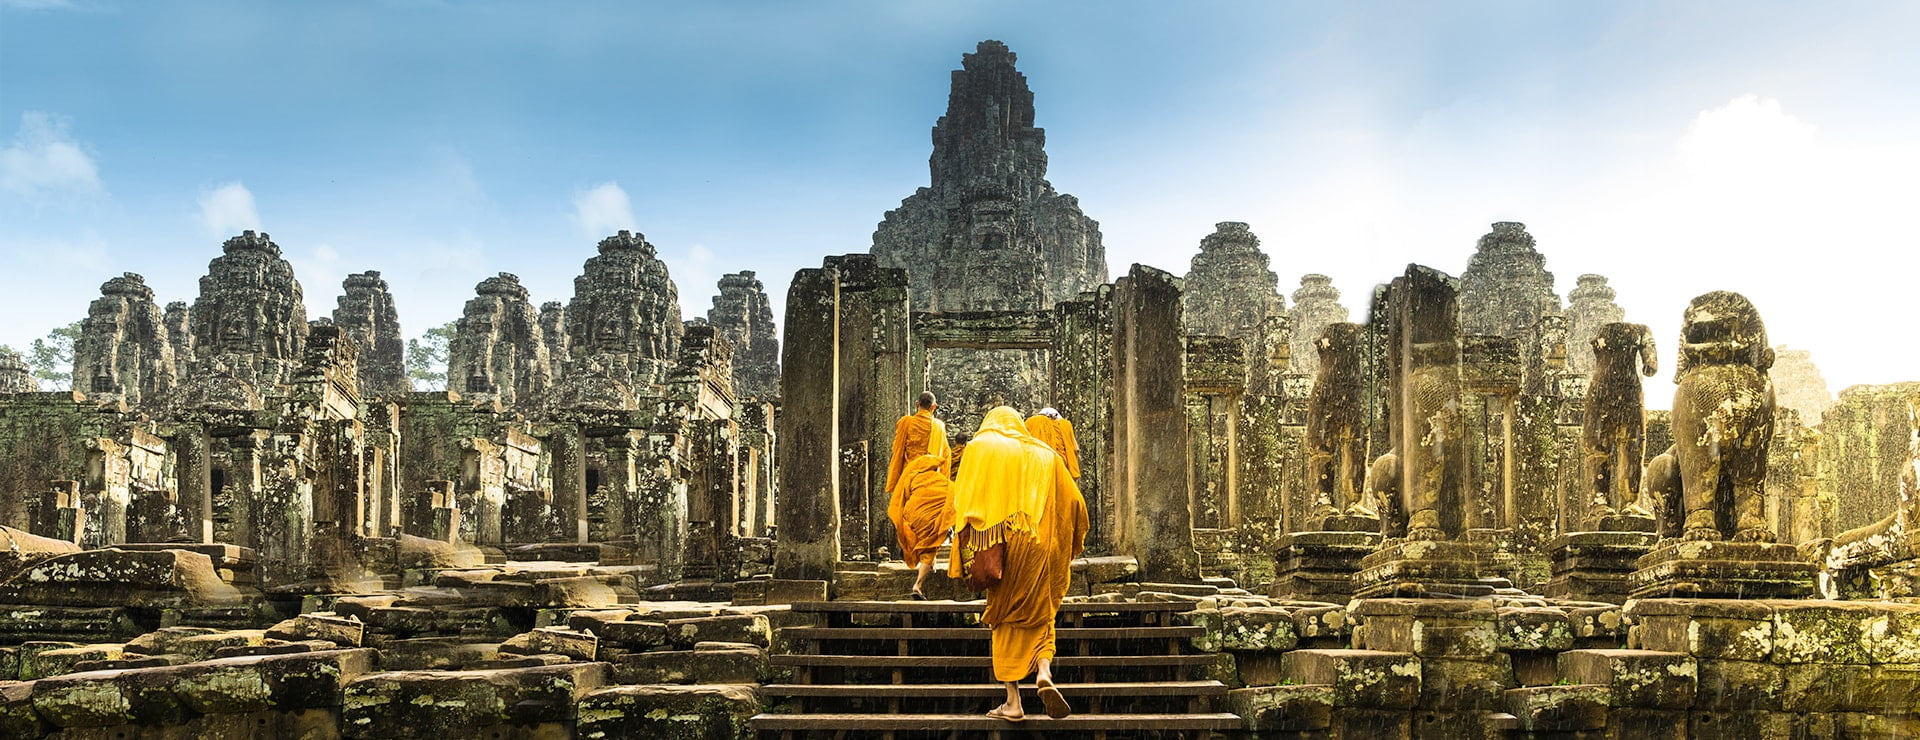 Bayon temple in the Angkor complex, Cambodia